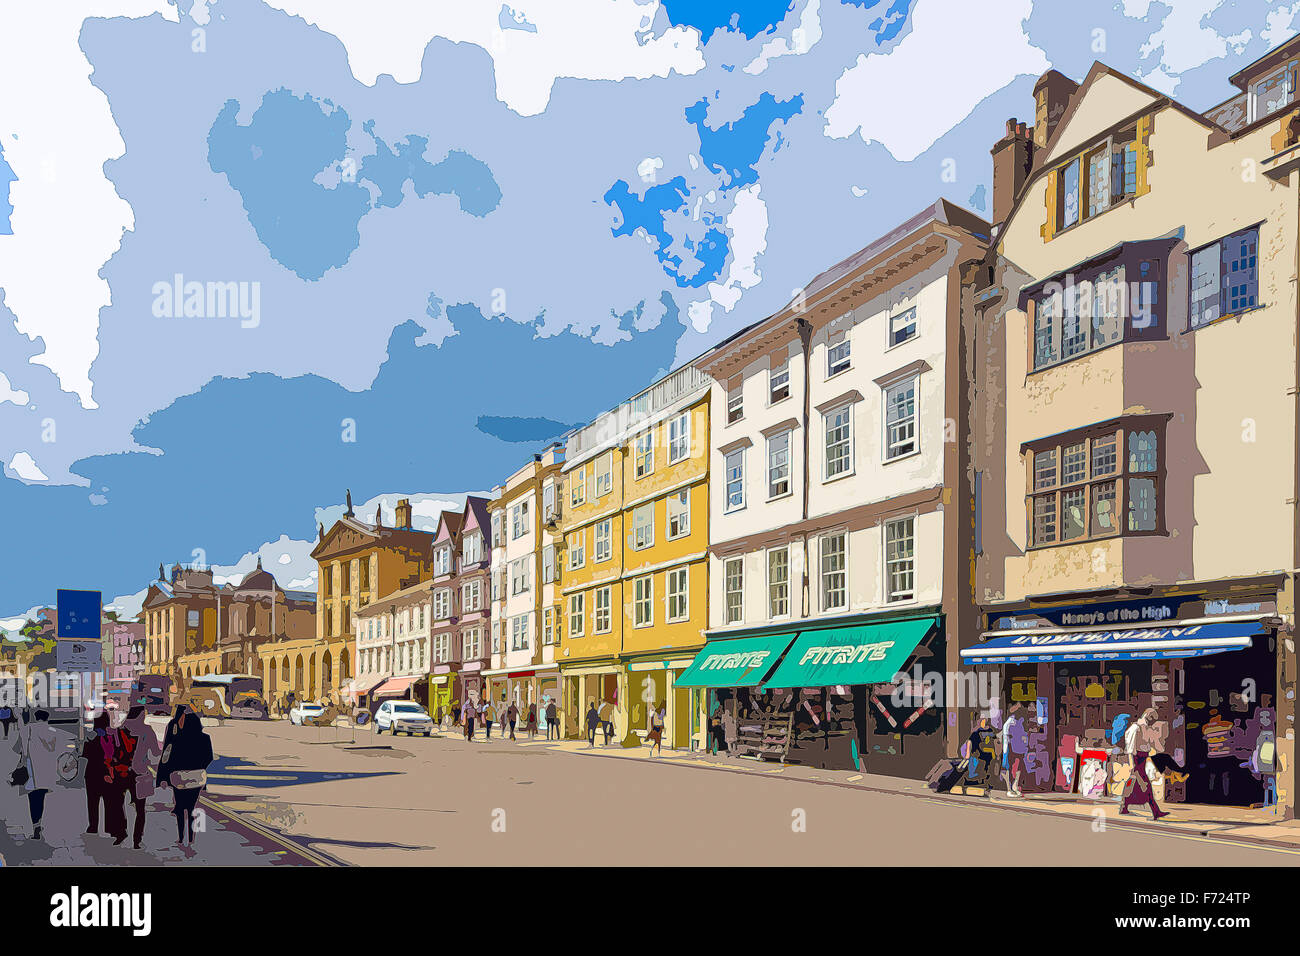 A poster style illustration from a photograph of High Street, Oxford, Oxfordshire, England, UK - Stock Image